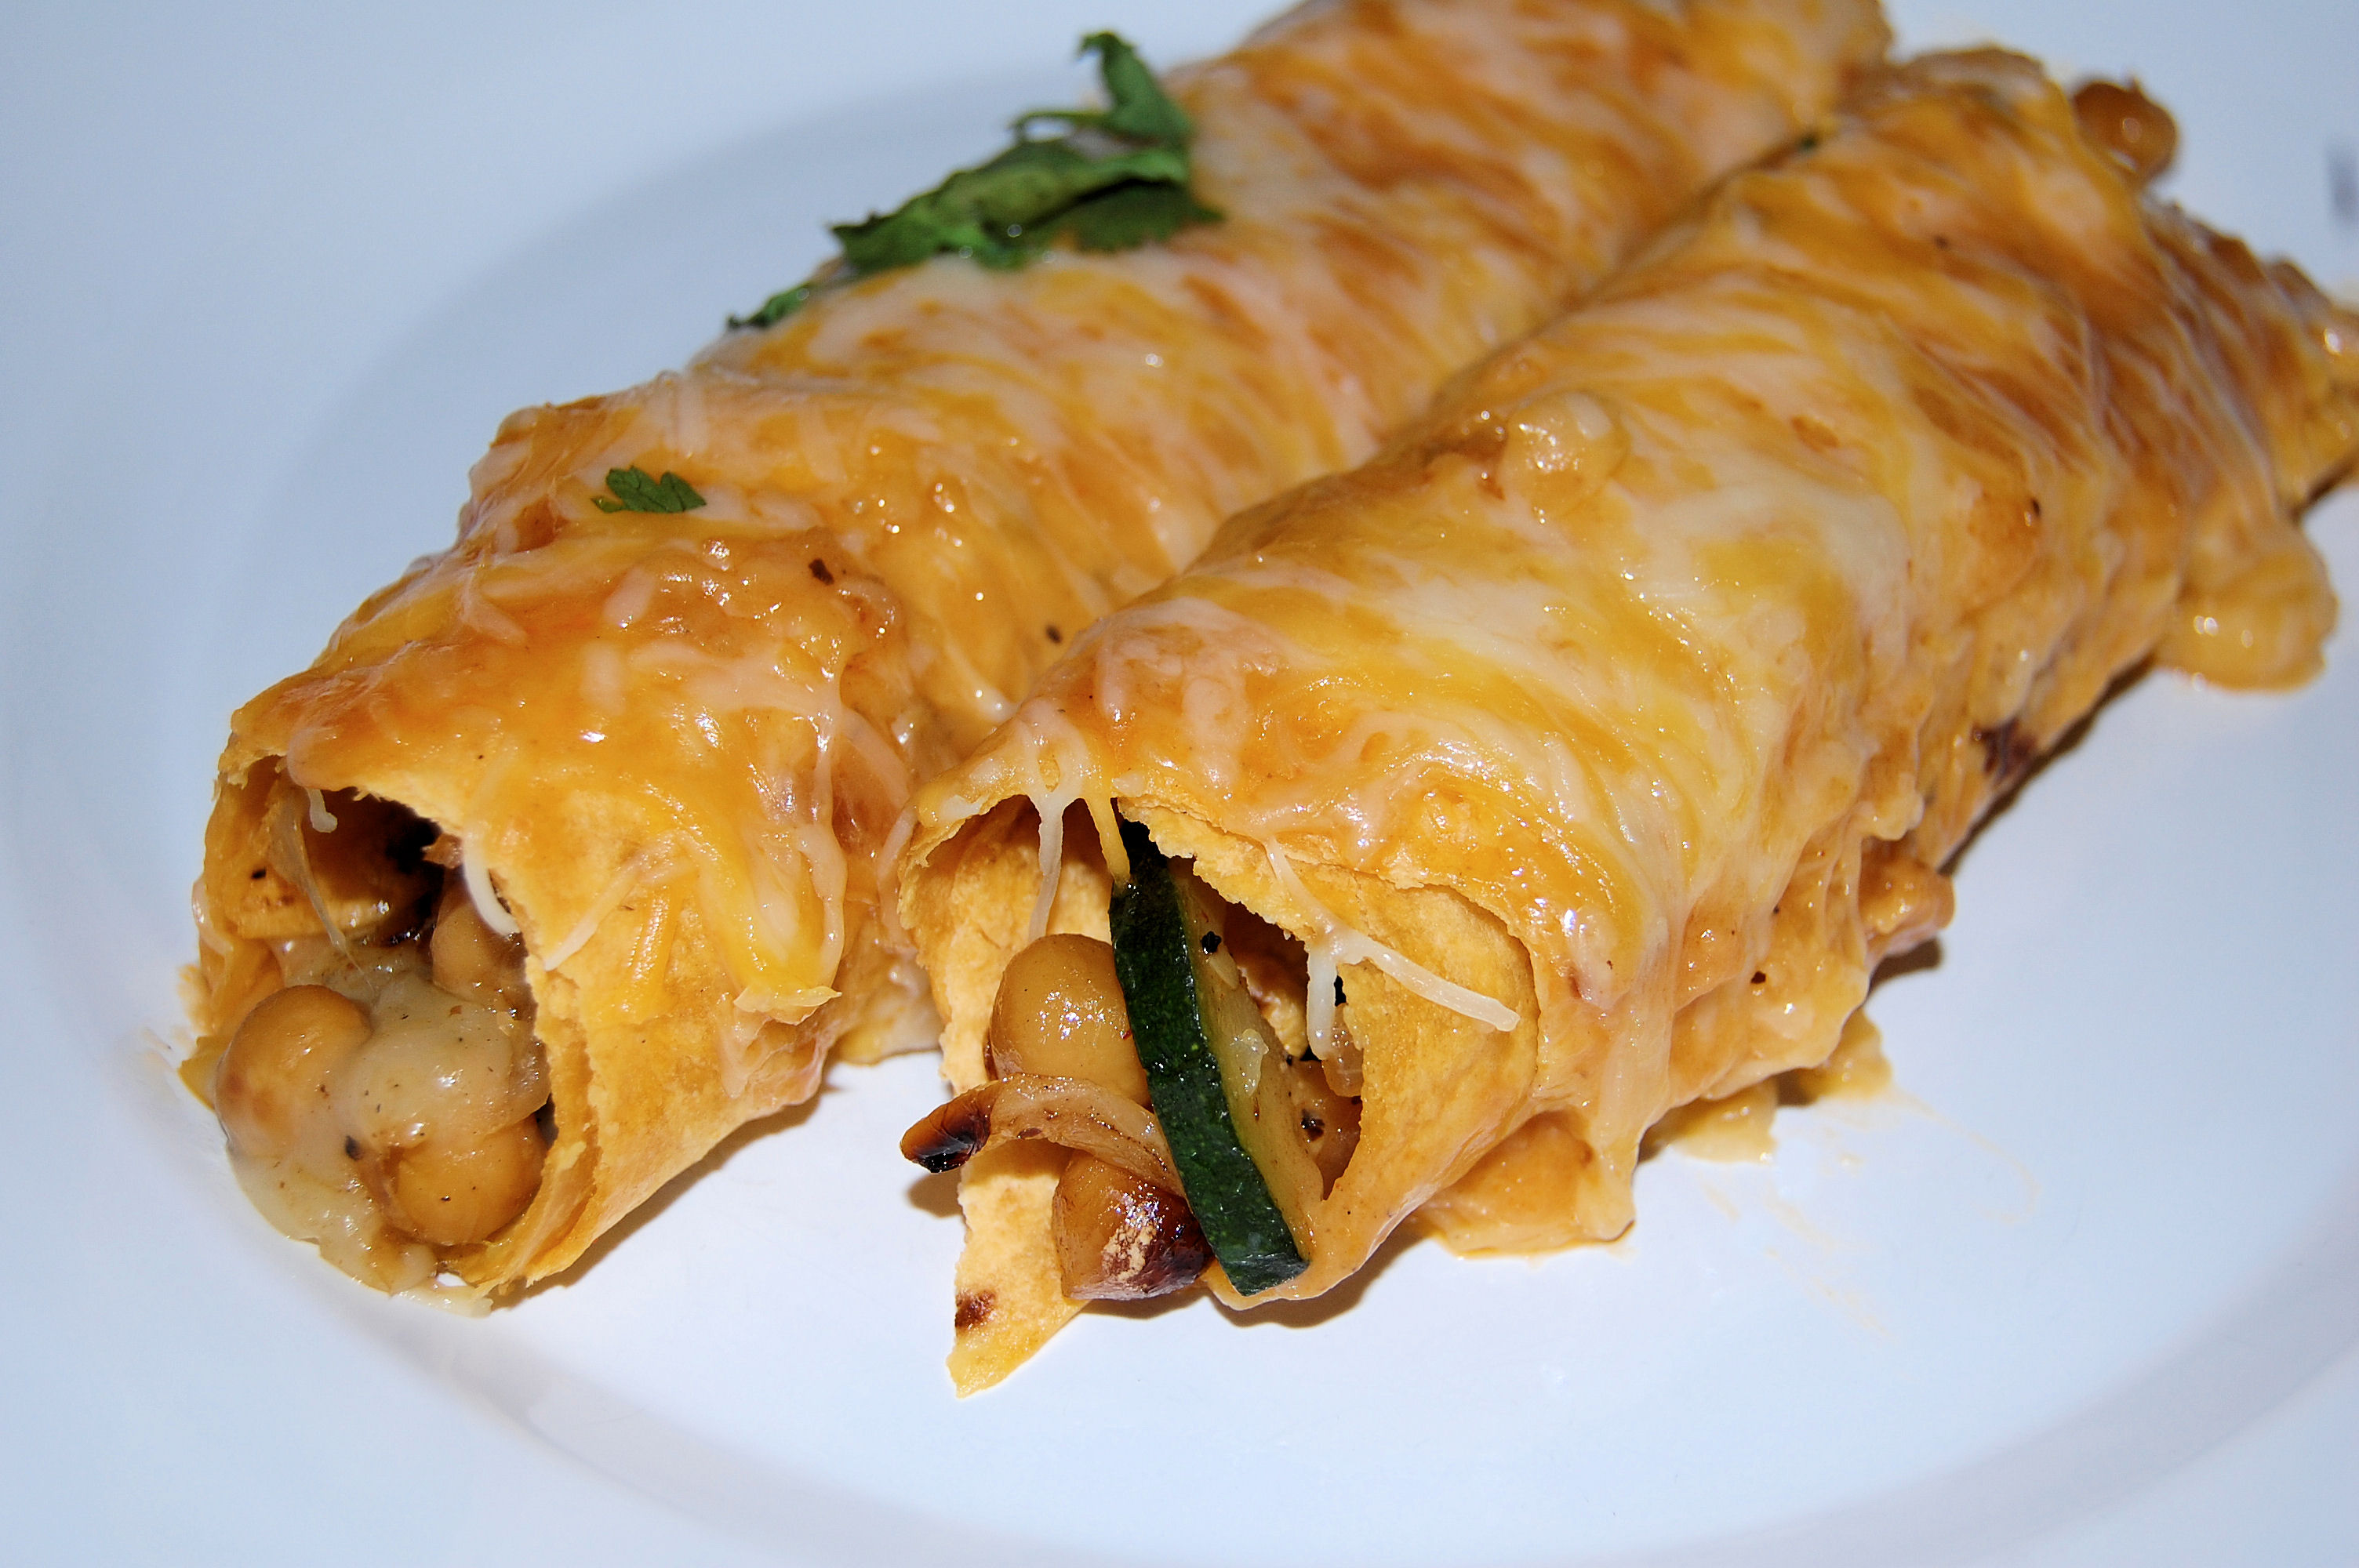 chickpea-and-zucchini-enchiladas-with-roasted-chipotle-sauce